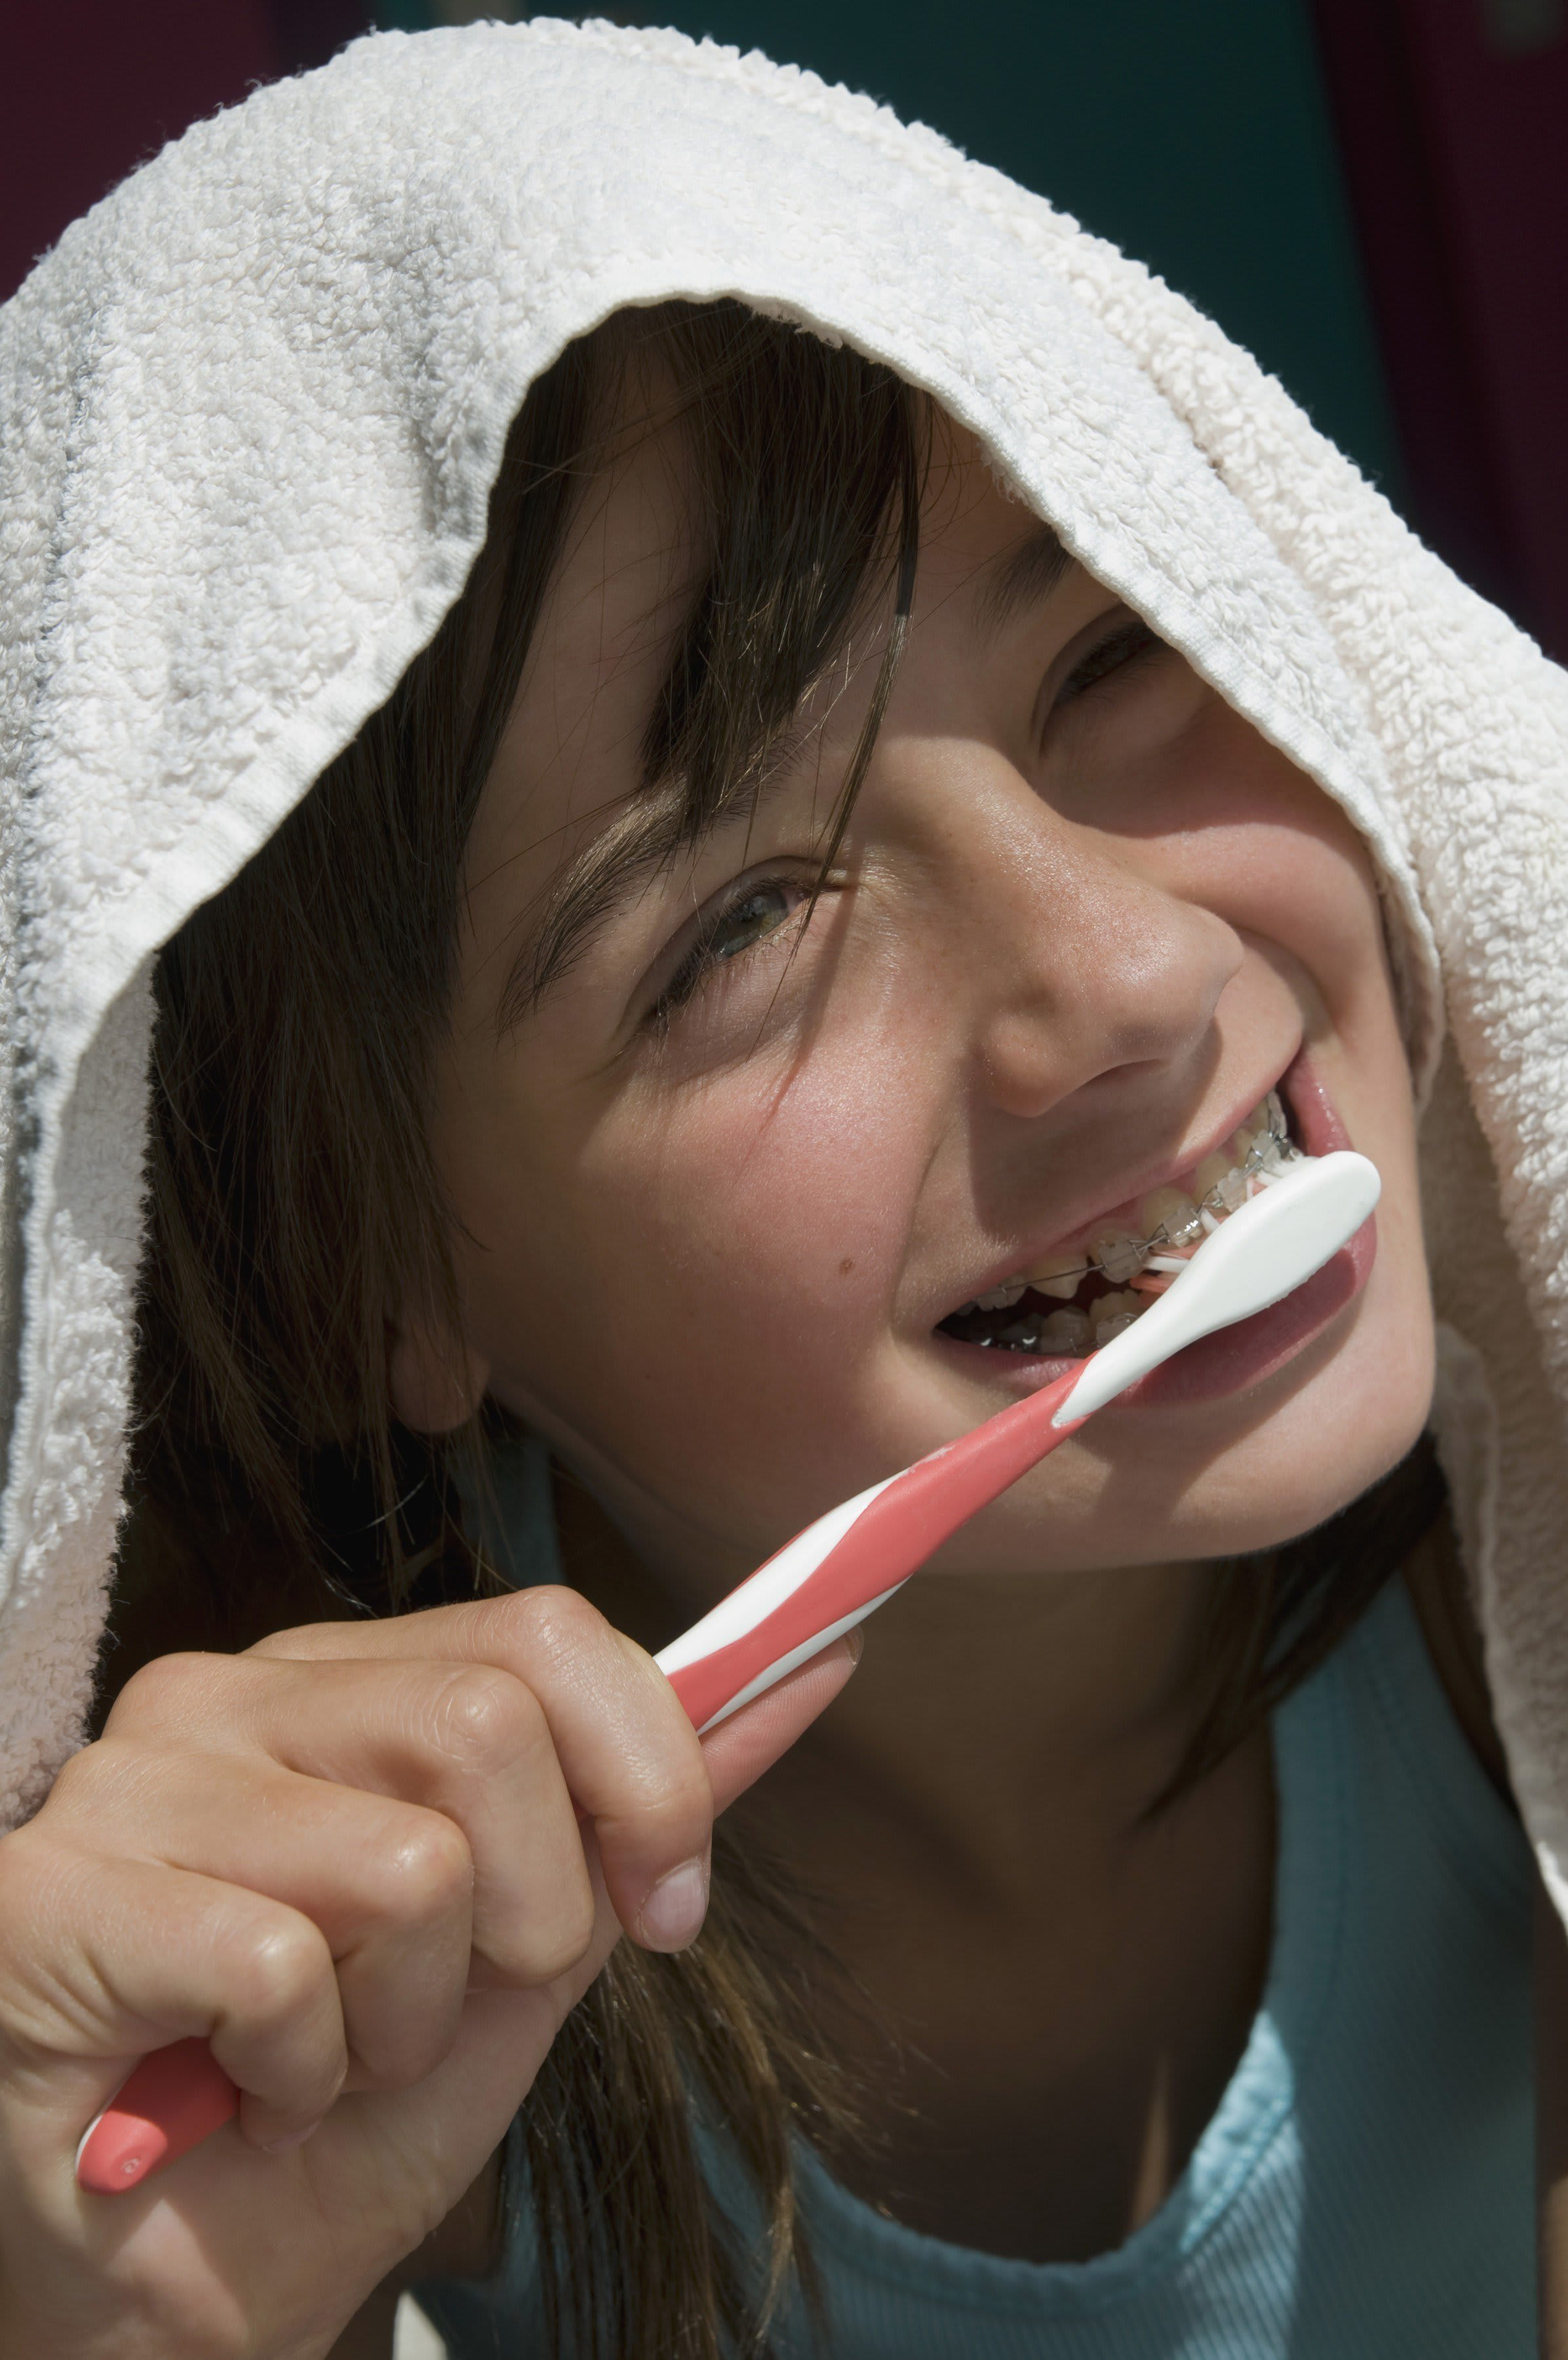 Smiley girl brushing her teeth with a manual toothbrush